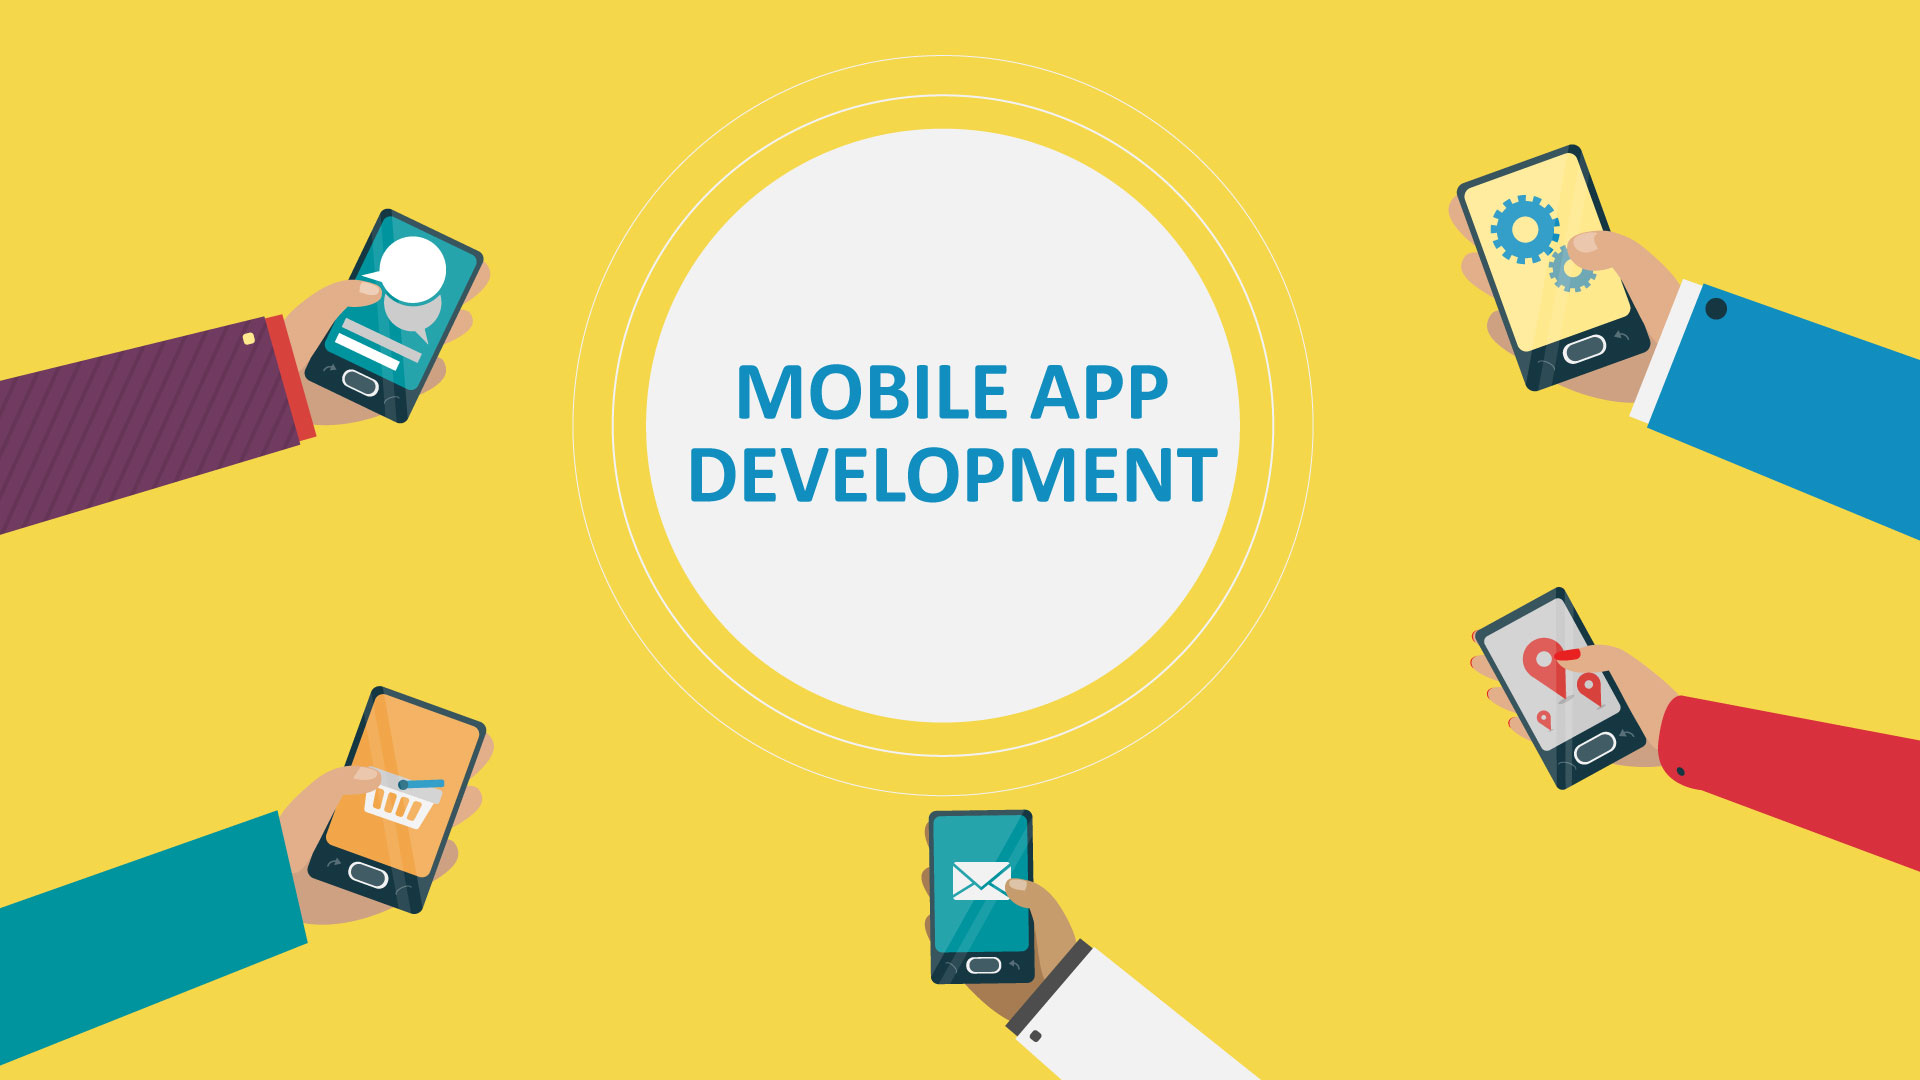 Only with the mobile App development company will you achieve your purpose